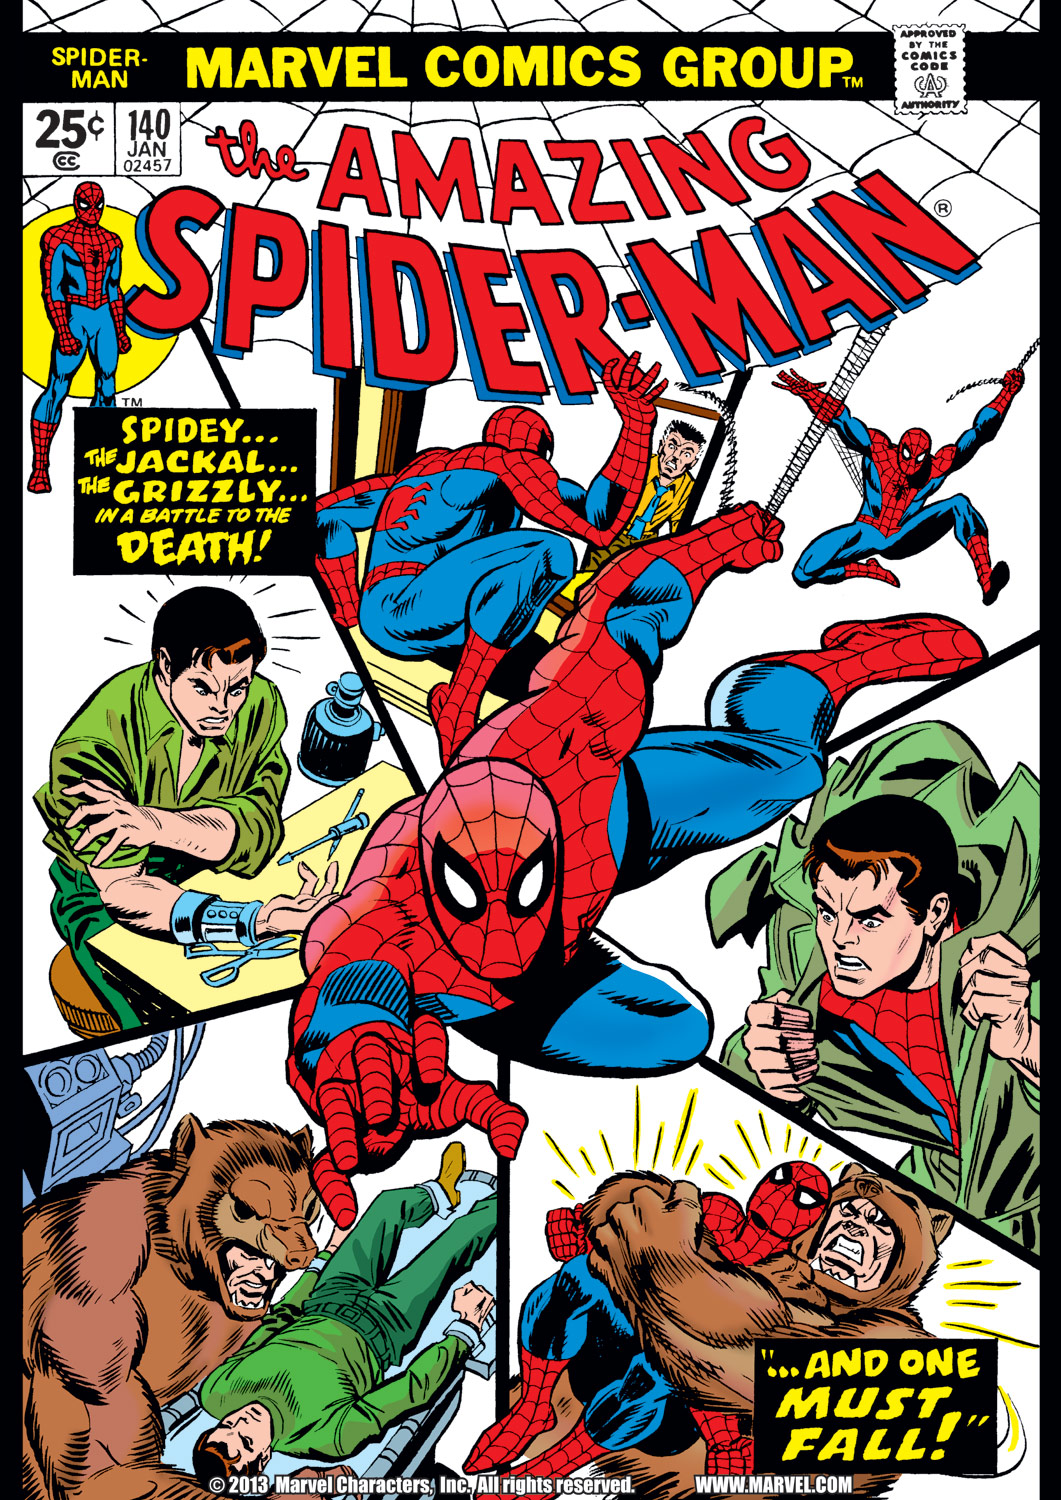 The Amazing Spider-Man (1963) #140